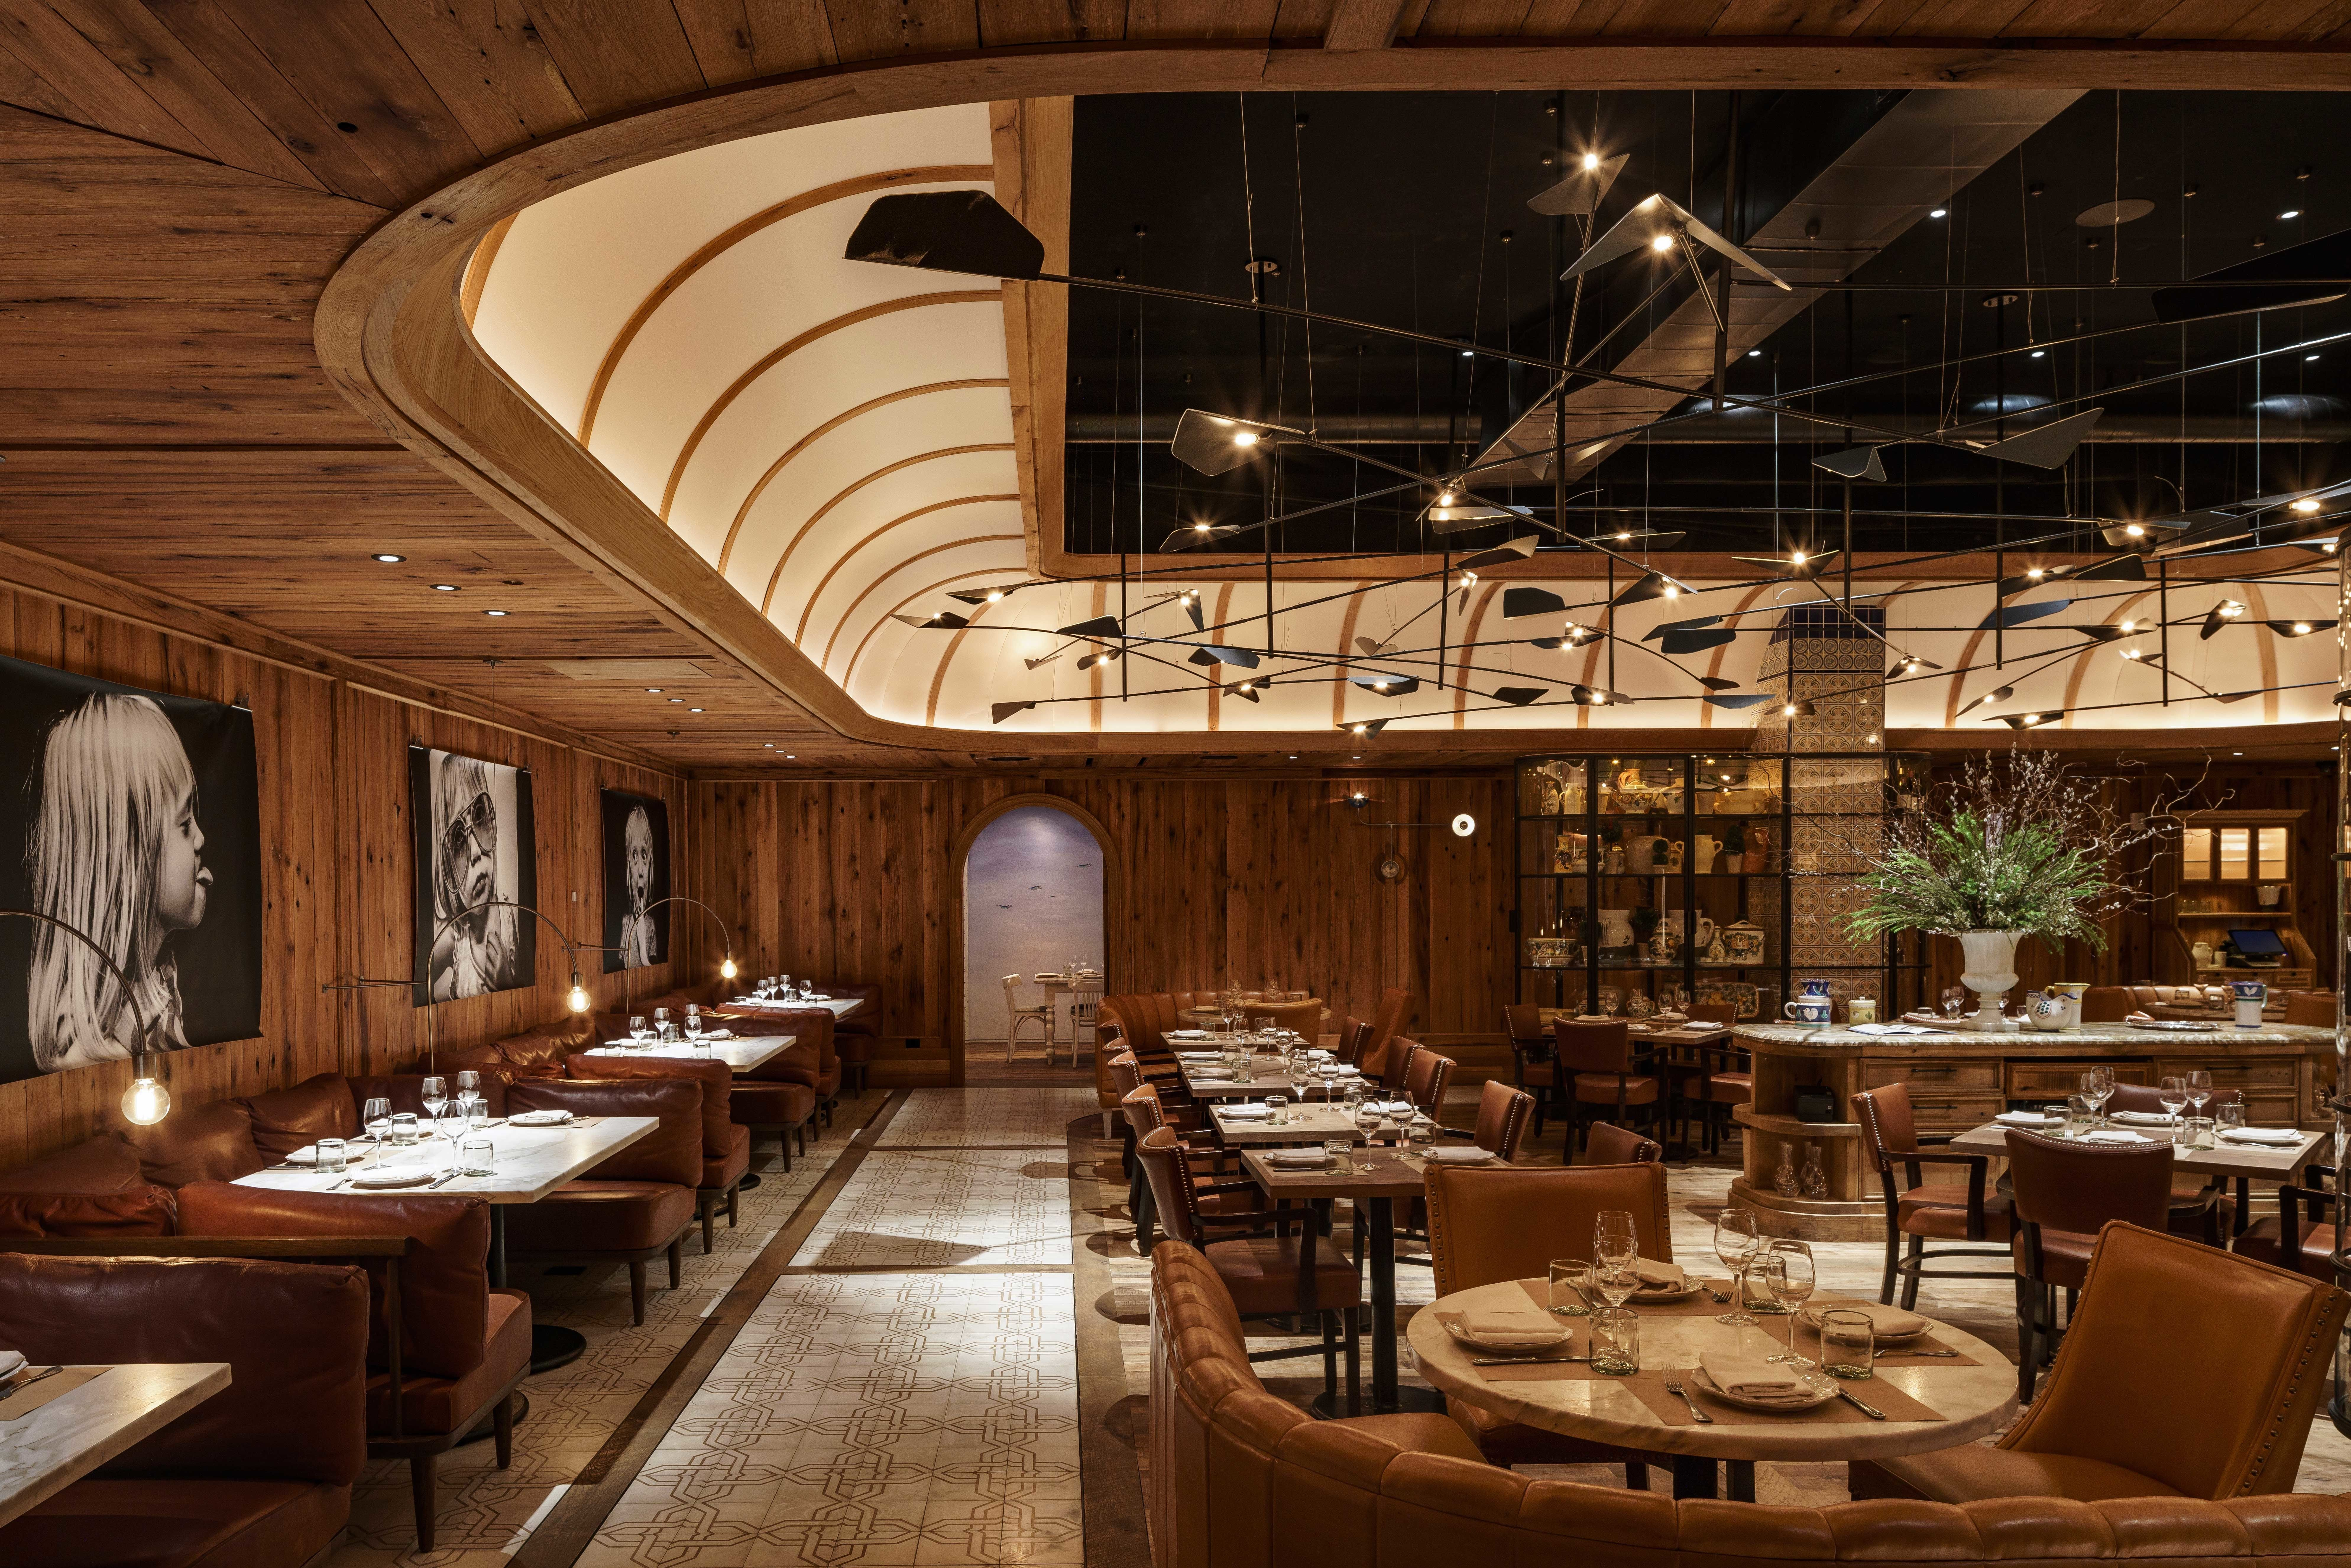 The Restaurant Design Trends You'll See Everywhere in 2018 | Dine | Restaurant design ...